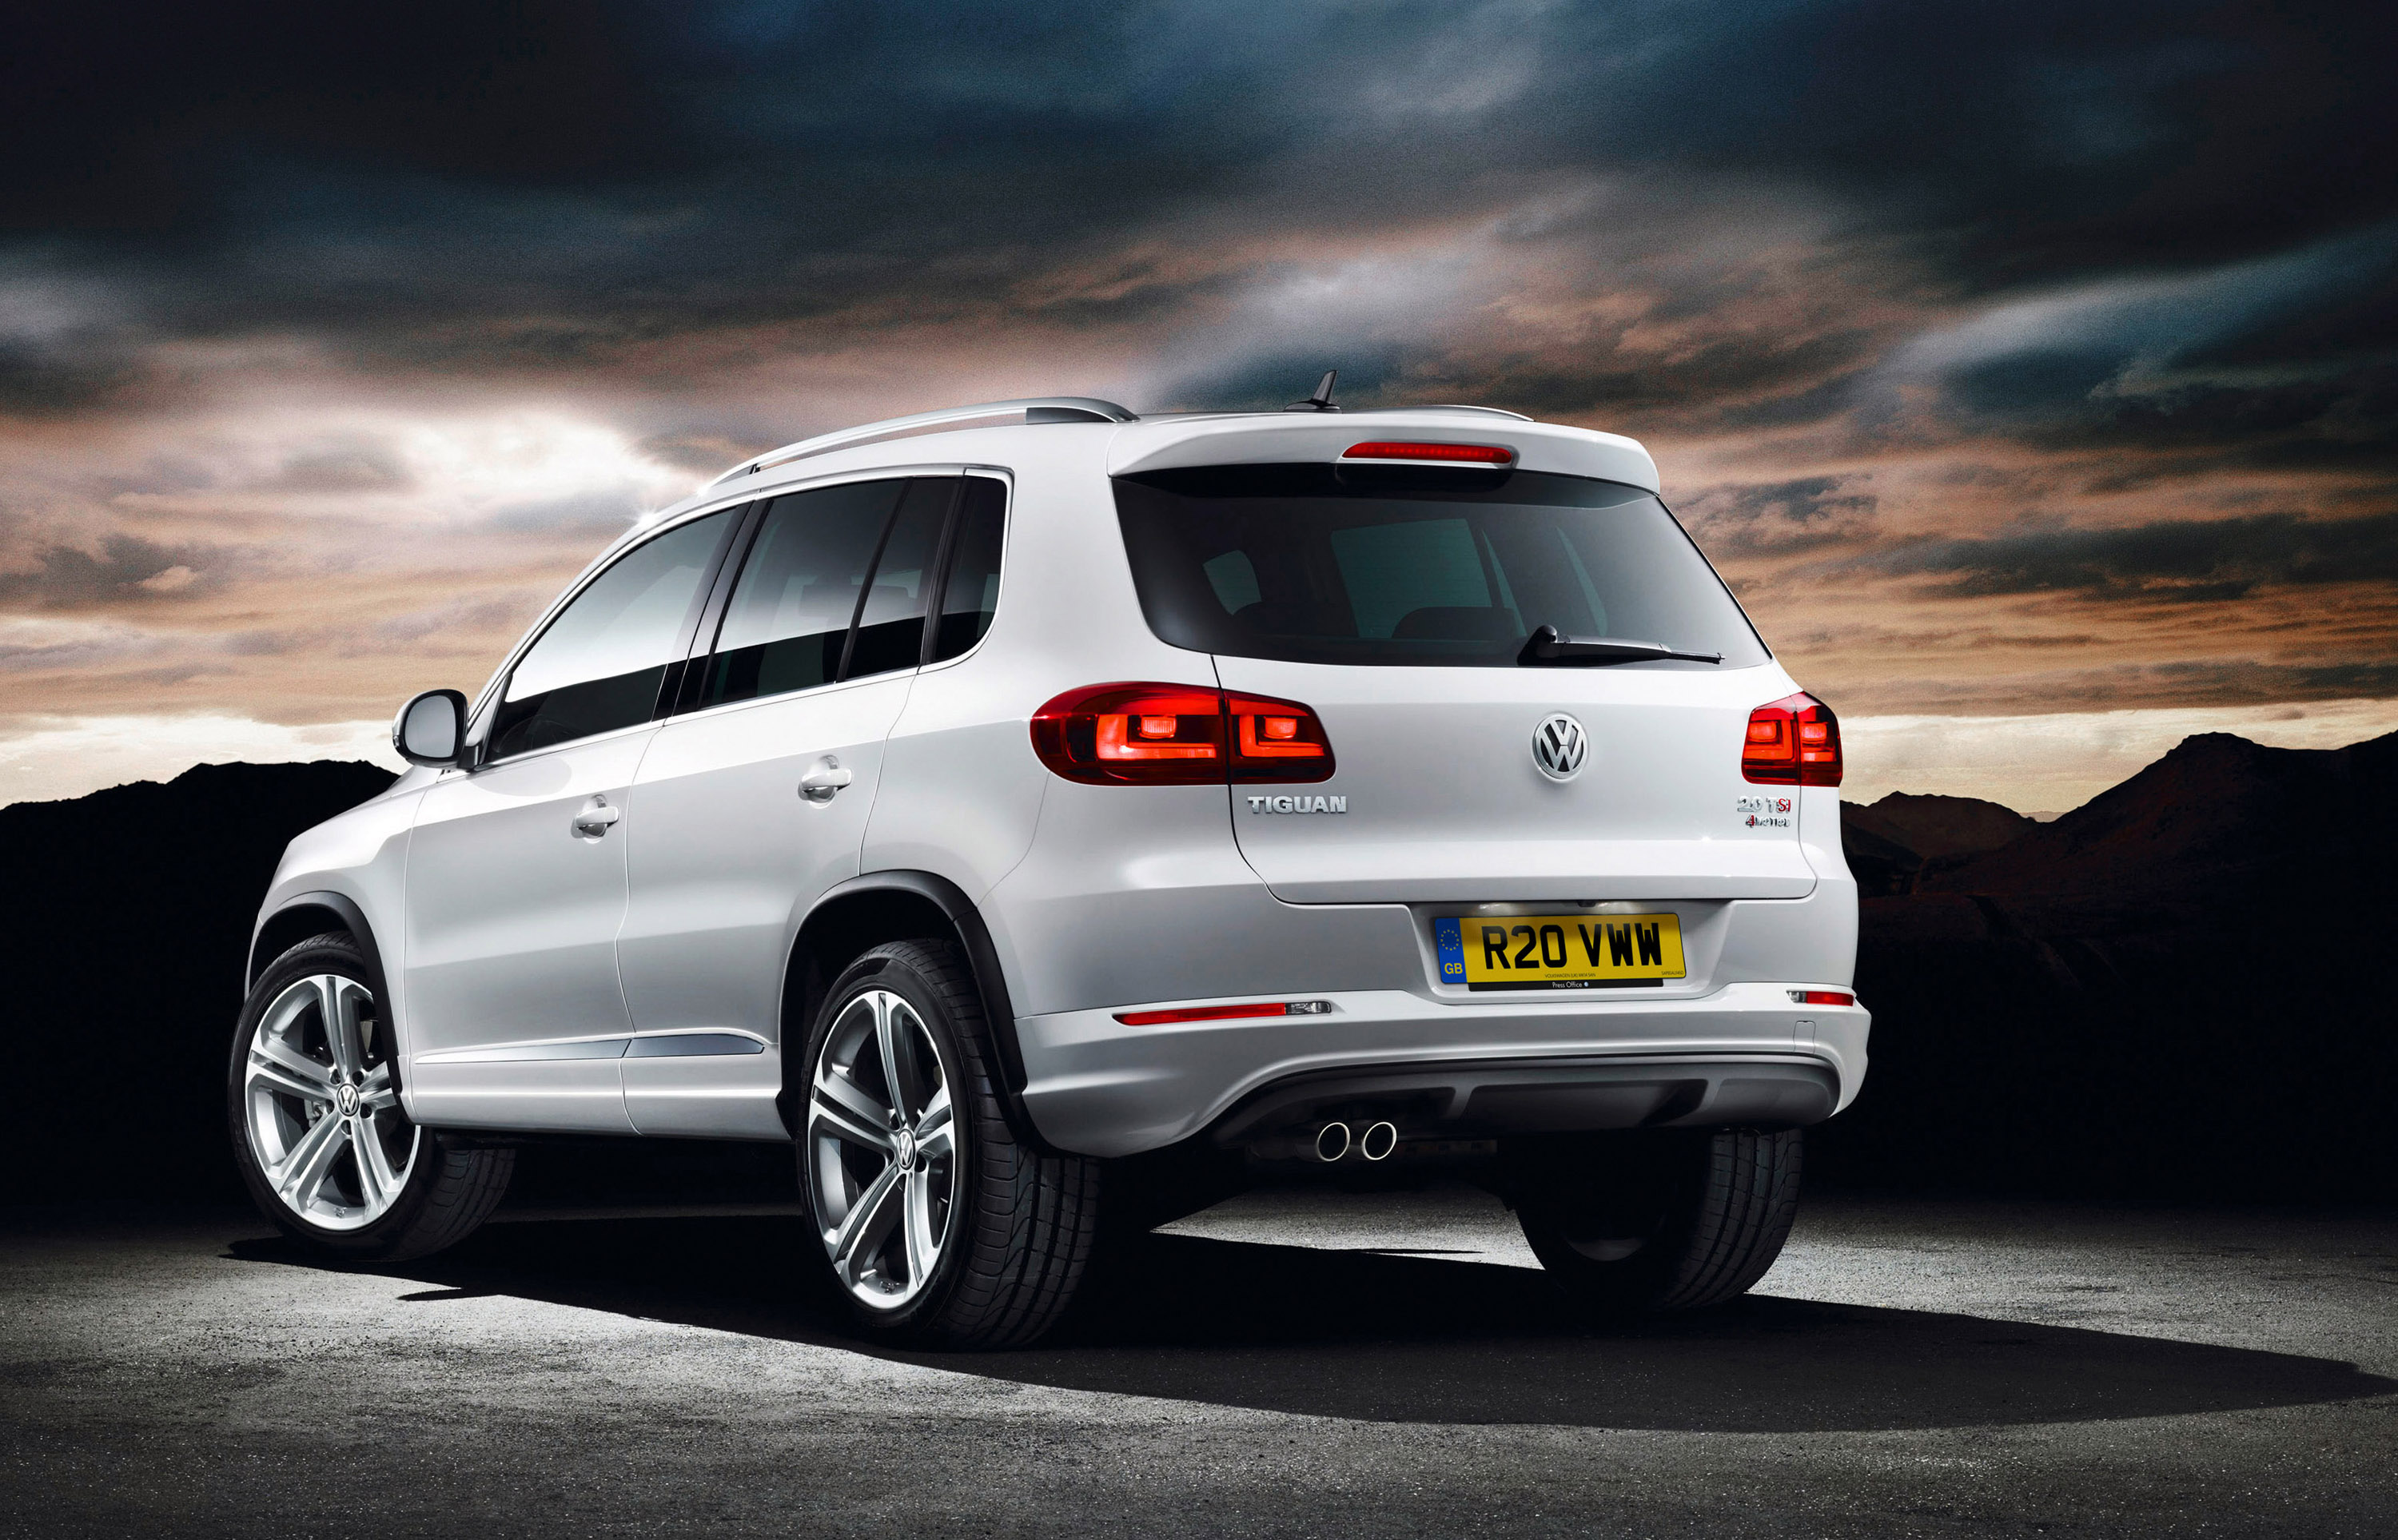 2013 volkswagen tiguan r line pricing announced. Black Bedroom Furniture Sets. Home Design Ideas